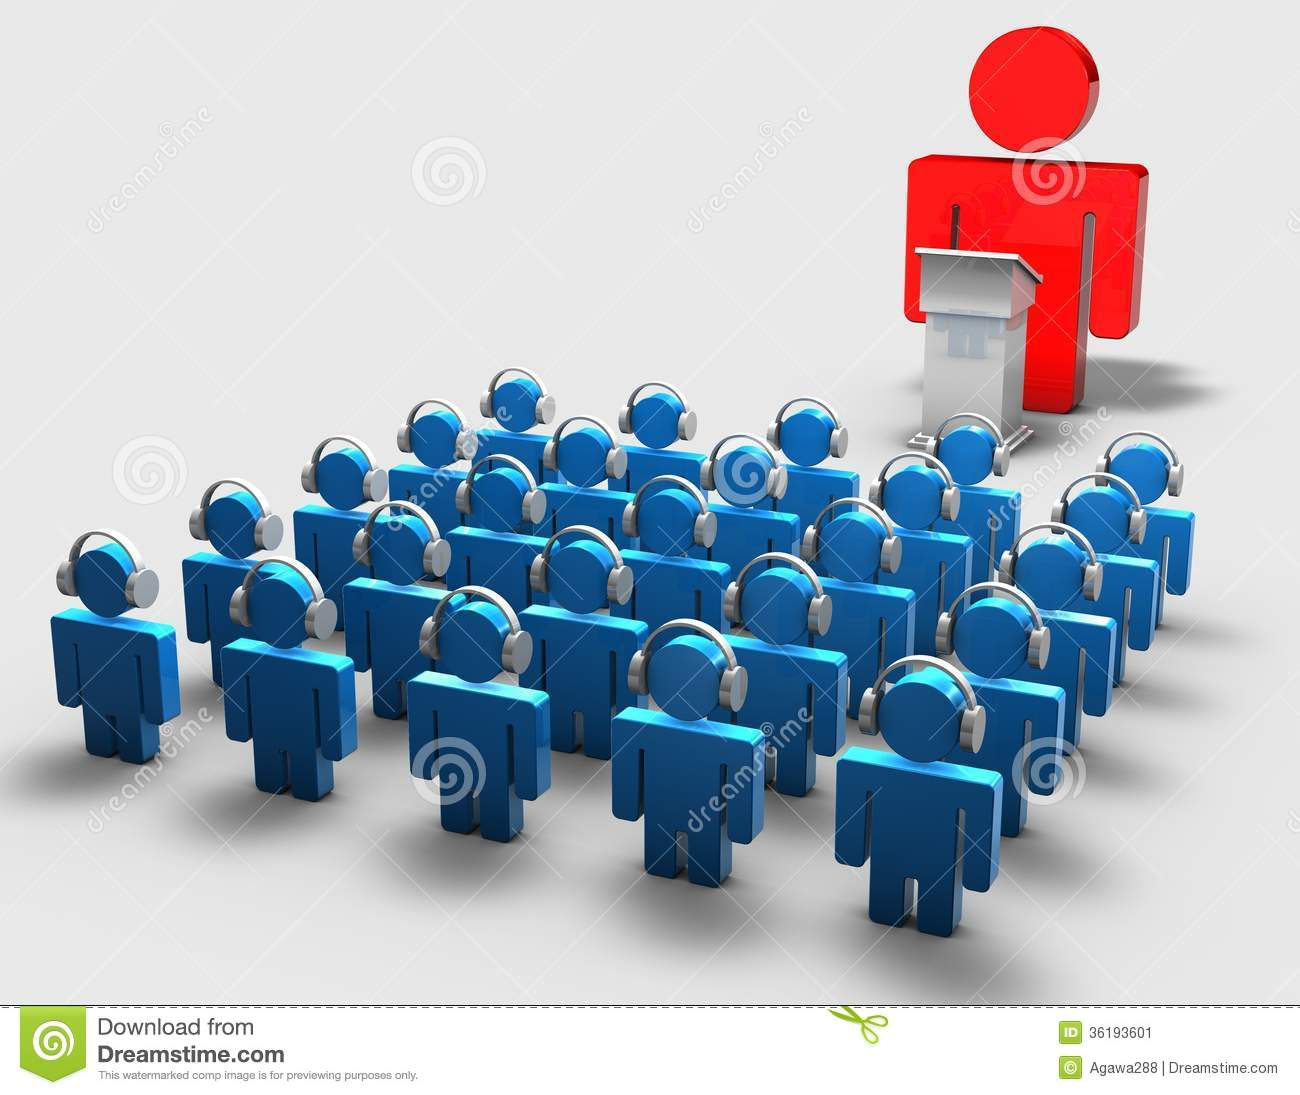 web-business-conference-d-concept-illustration-36193601.jpg